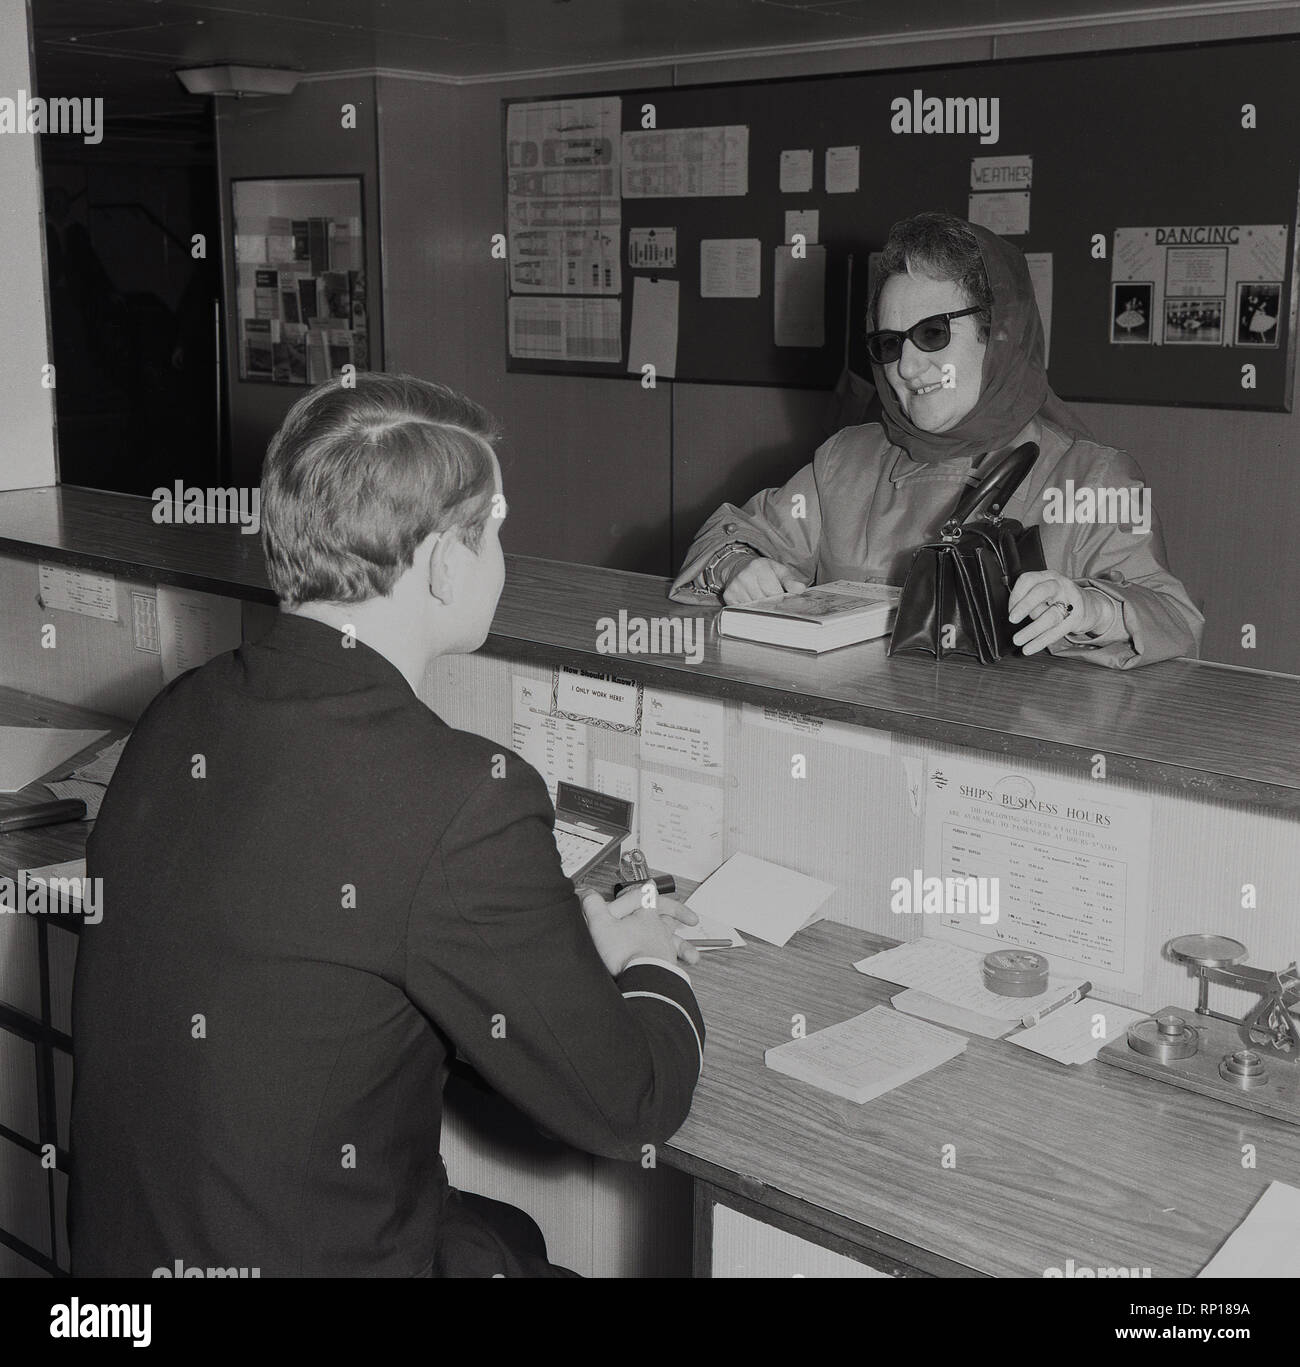 1950s, a lady passenger travelling on a Union-castle steamship talking to a uniformed ship's officer at the information desk or inquiry bureau. - Stock Image